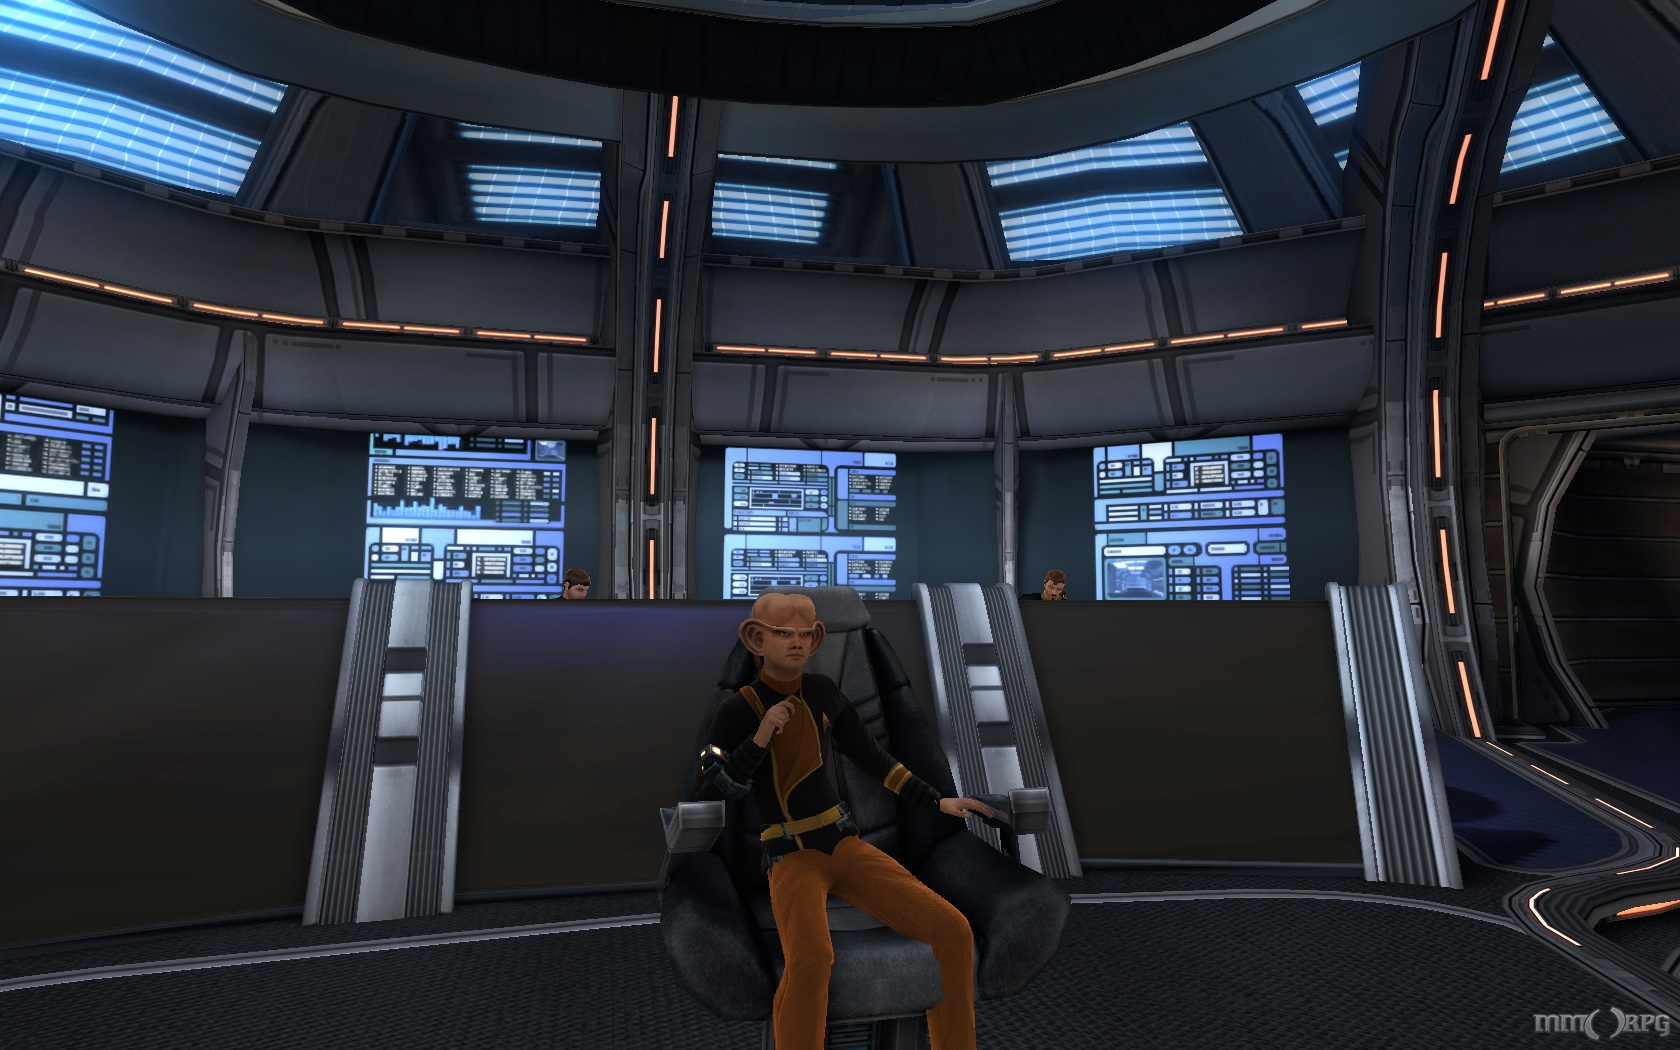 A young ferengi kidnaps his fleet admiral's chair when he's on an away mission.